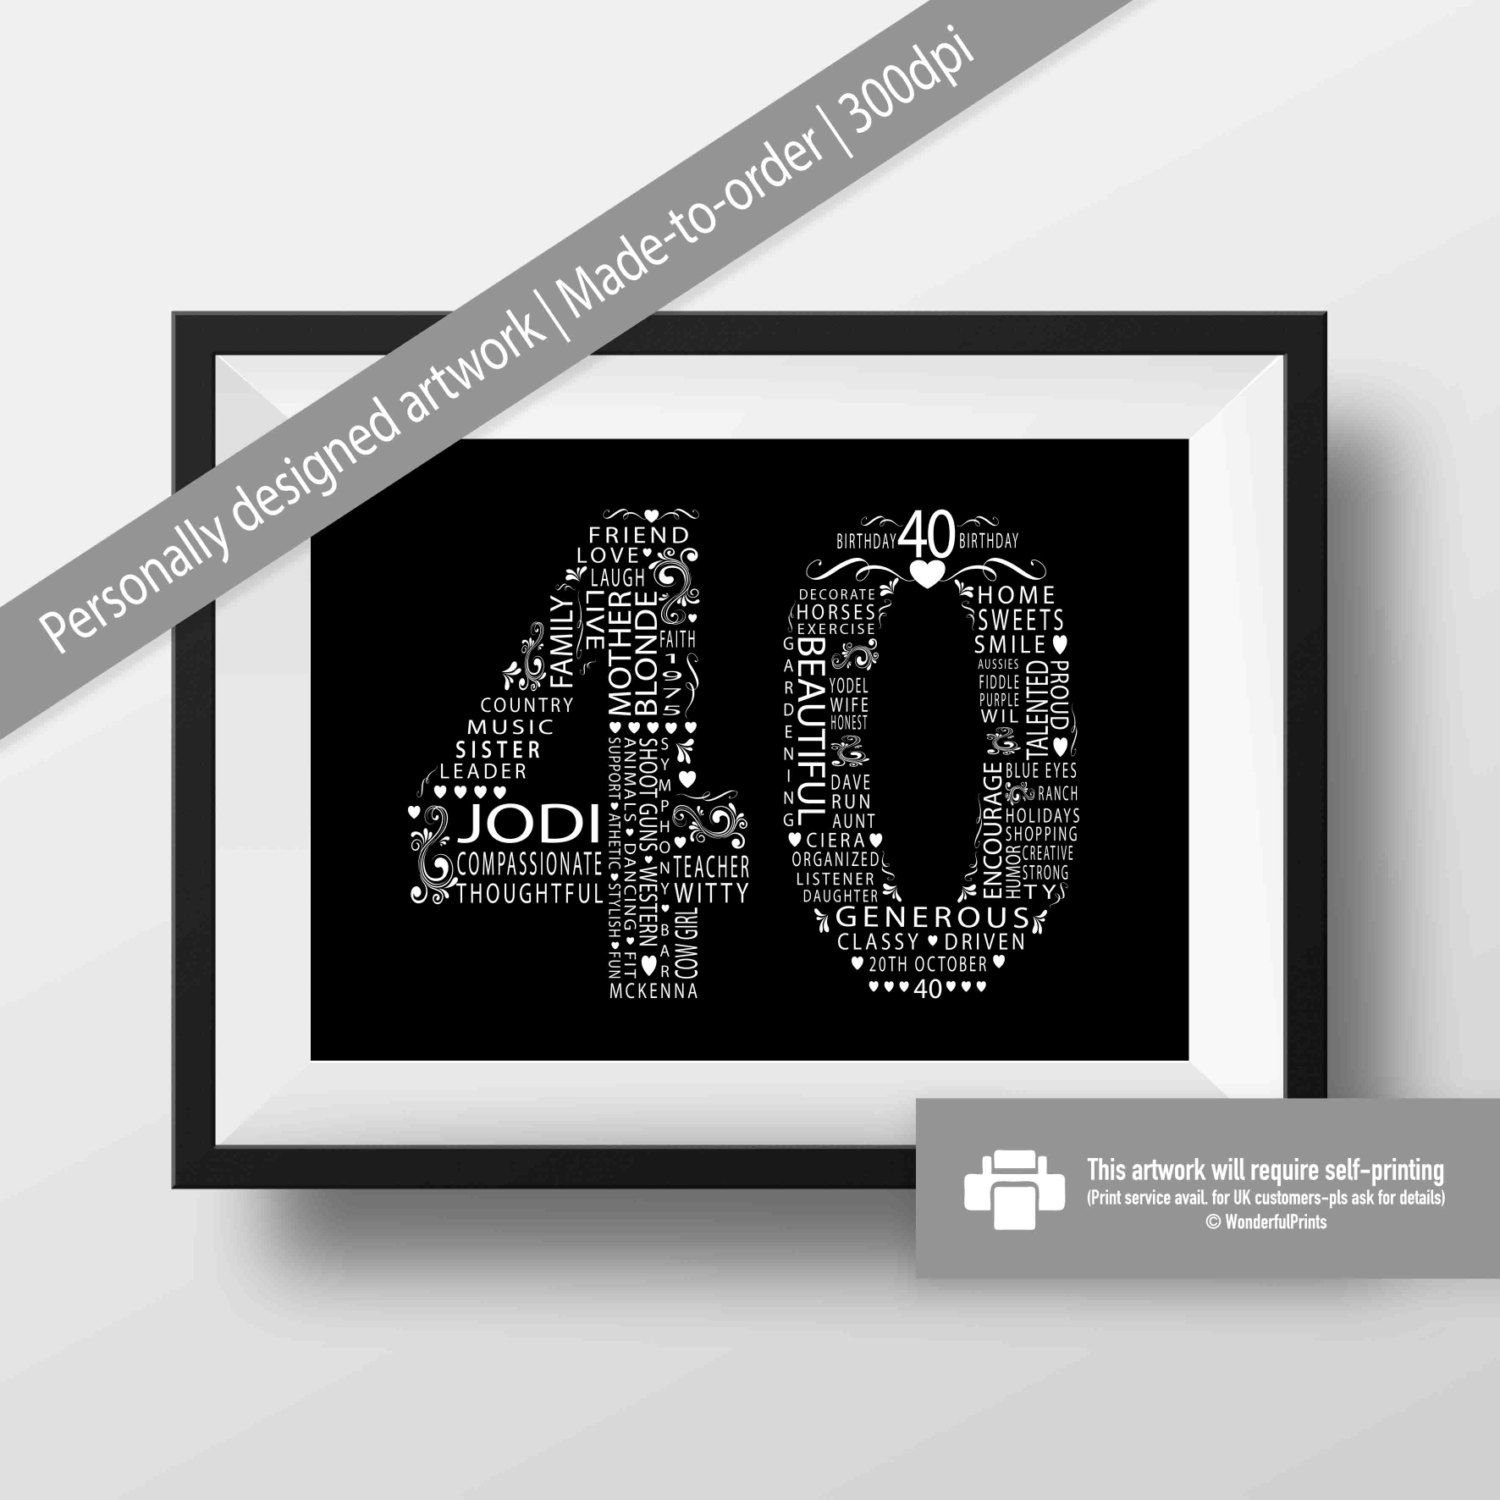 10 Stylish 40 Birthday Gift Ideas For Her image result for 40th birthday gift party ideas showers gifts 1 2020